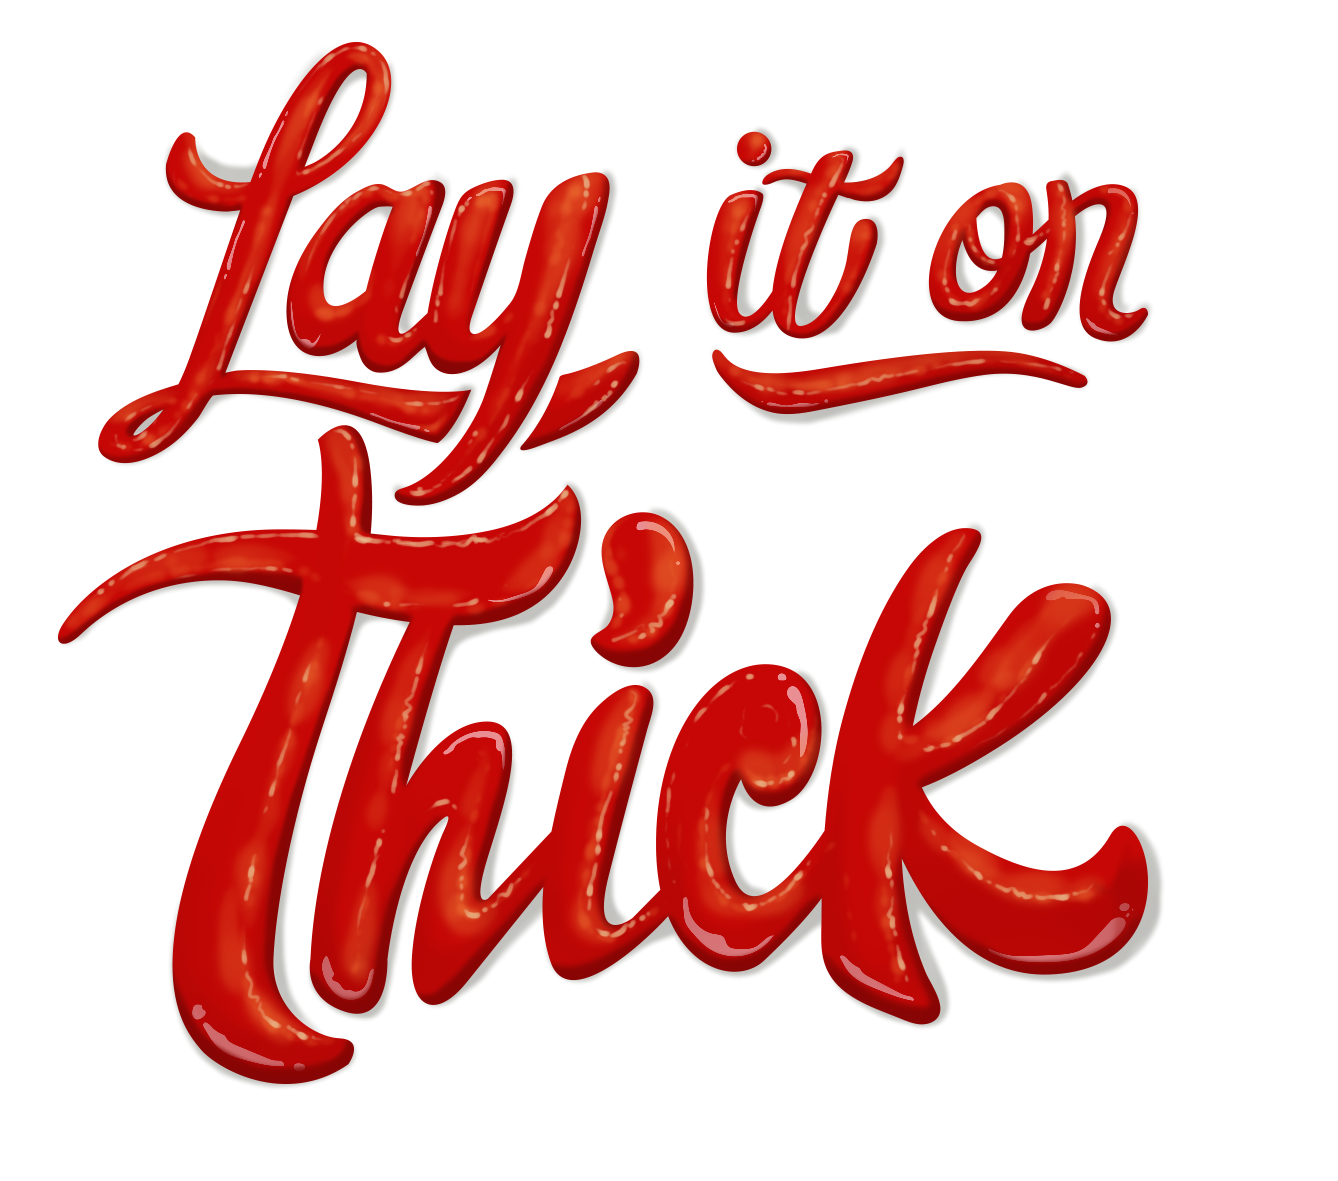 Lay_it_on_Thick_rendering.png